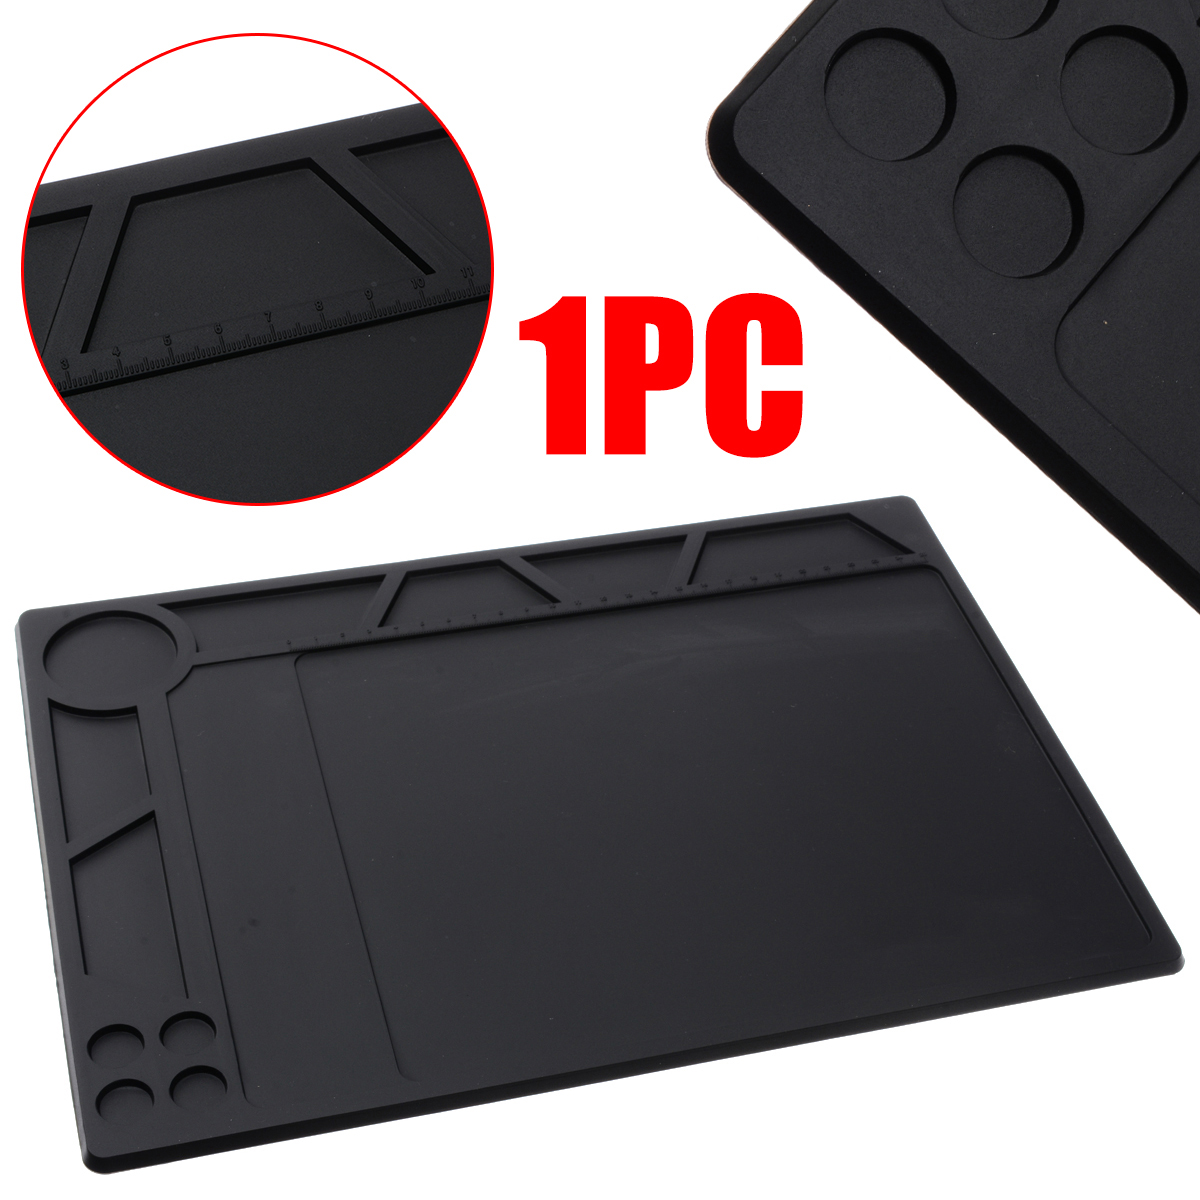 1Pcs Silicone Black Anti Static ESD Heat Insulation Pad Mat Blanket Phone PC Tablet Repair For Welding Equipment 359c260x5mm